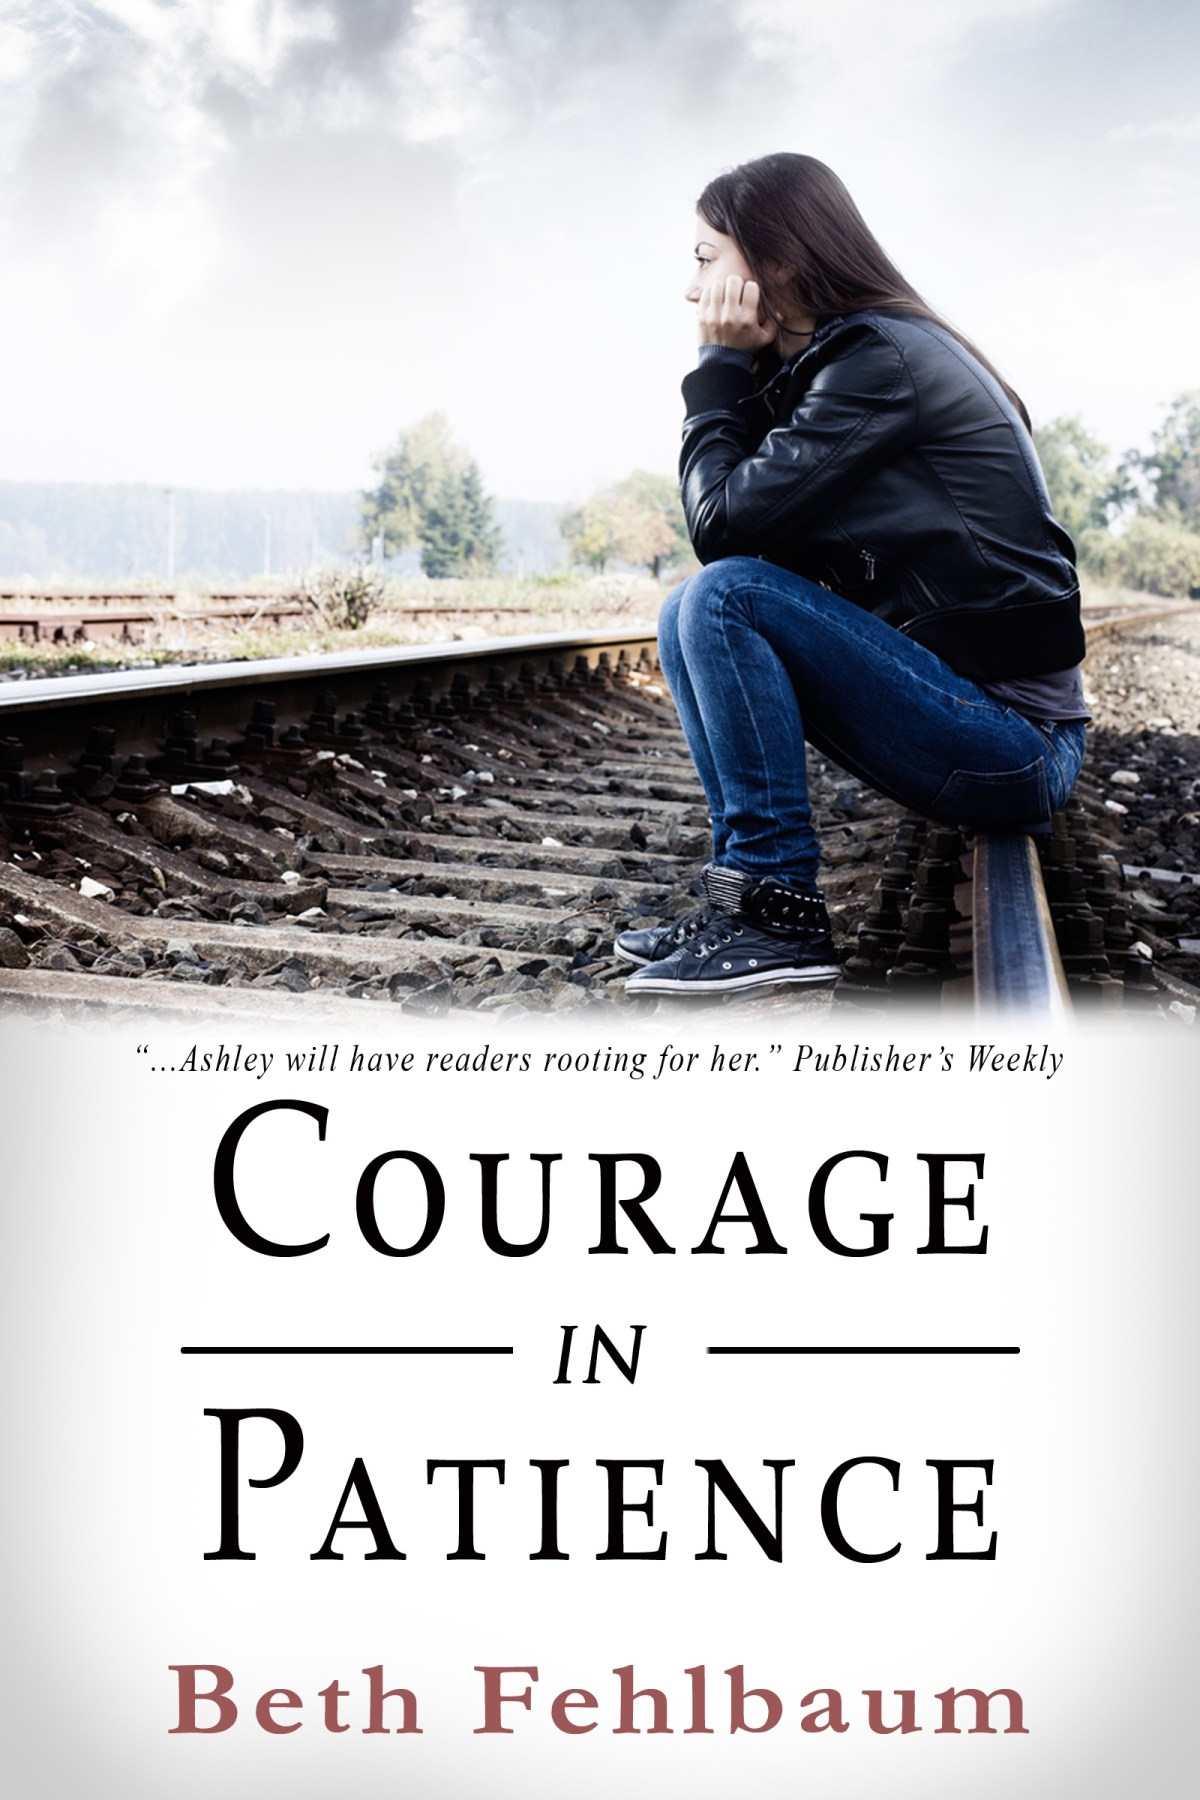 Find out how to get your free ebook, and read Beth's insights into the creation of COURAGE IN PATIENCE and the process of recovery from Childhood Sexual Abuse